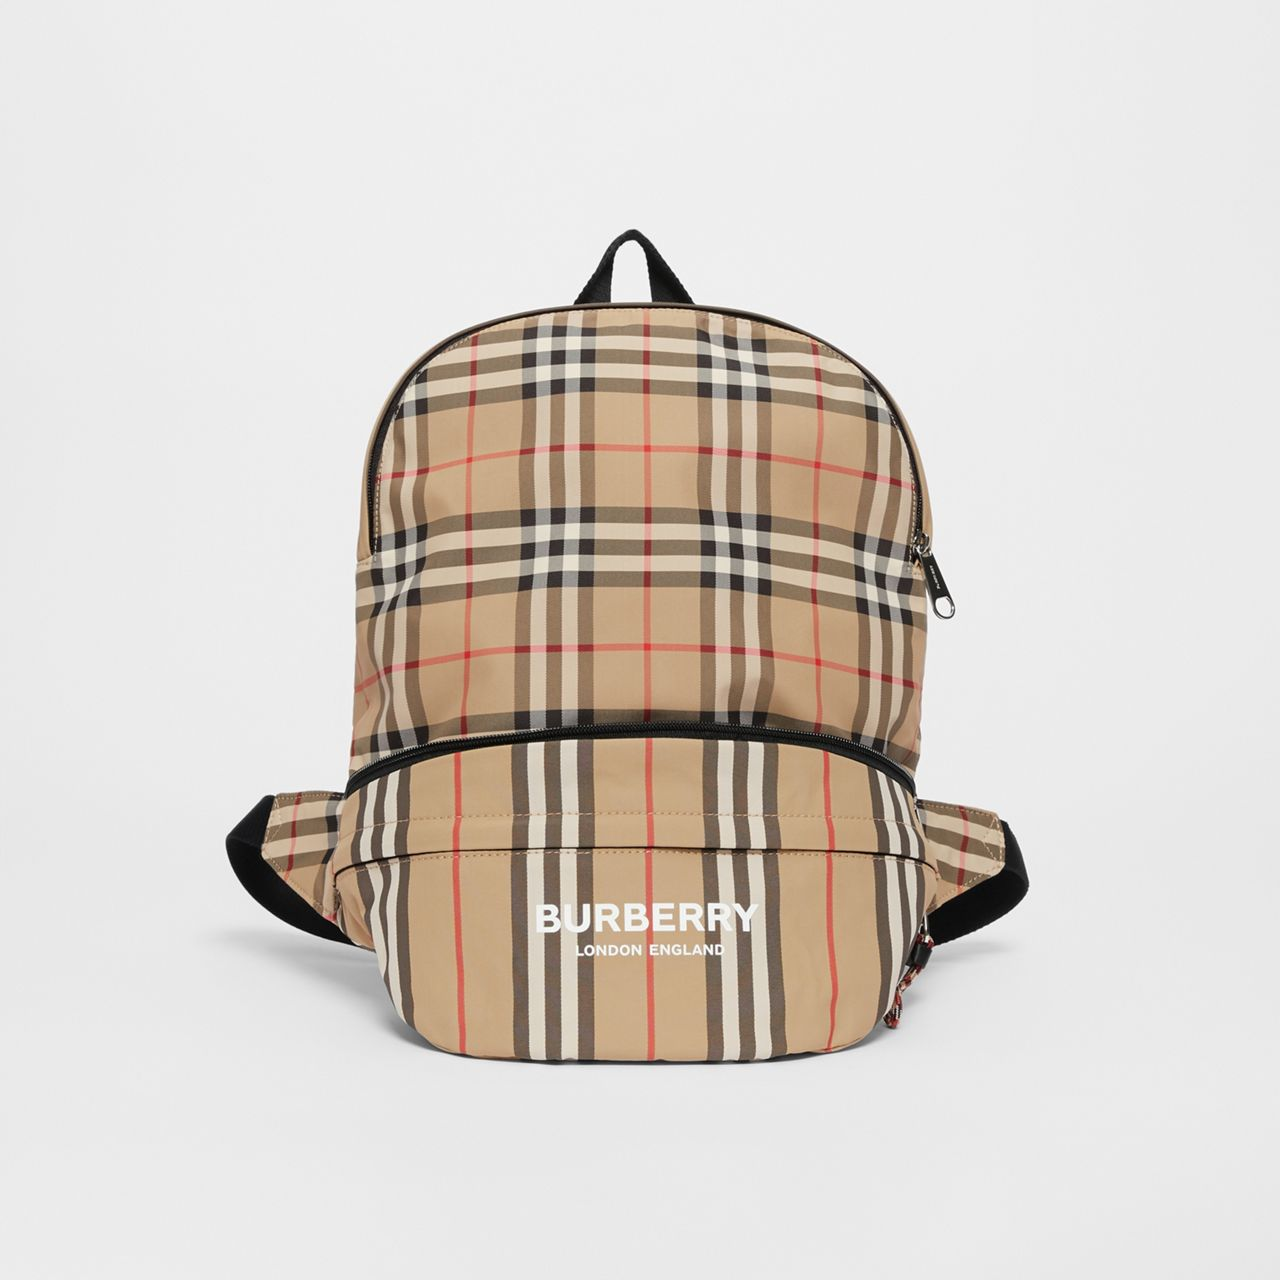 Burberry Vintage Check and Icon Stripe Convertible Bum Bag